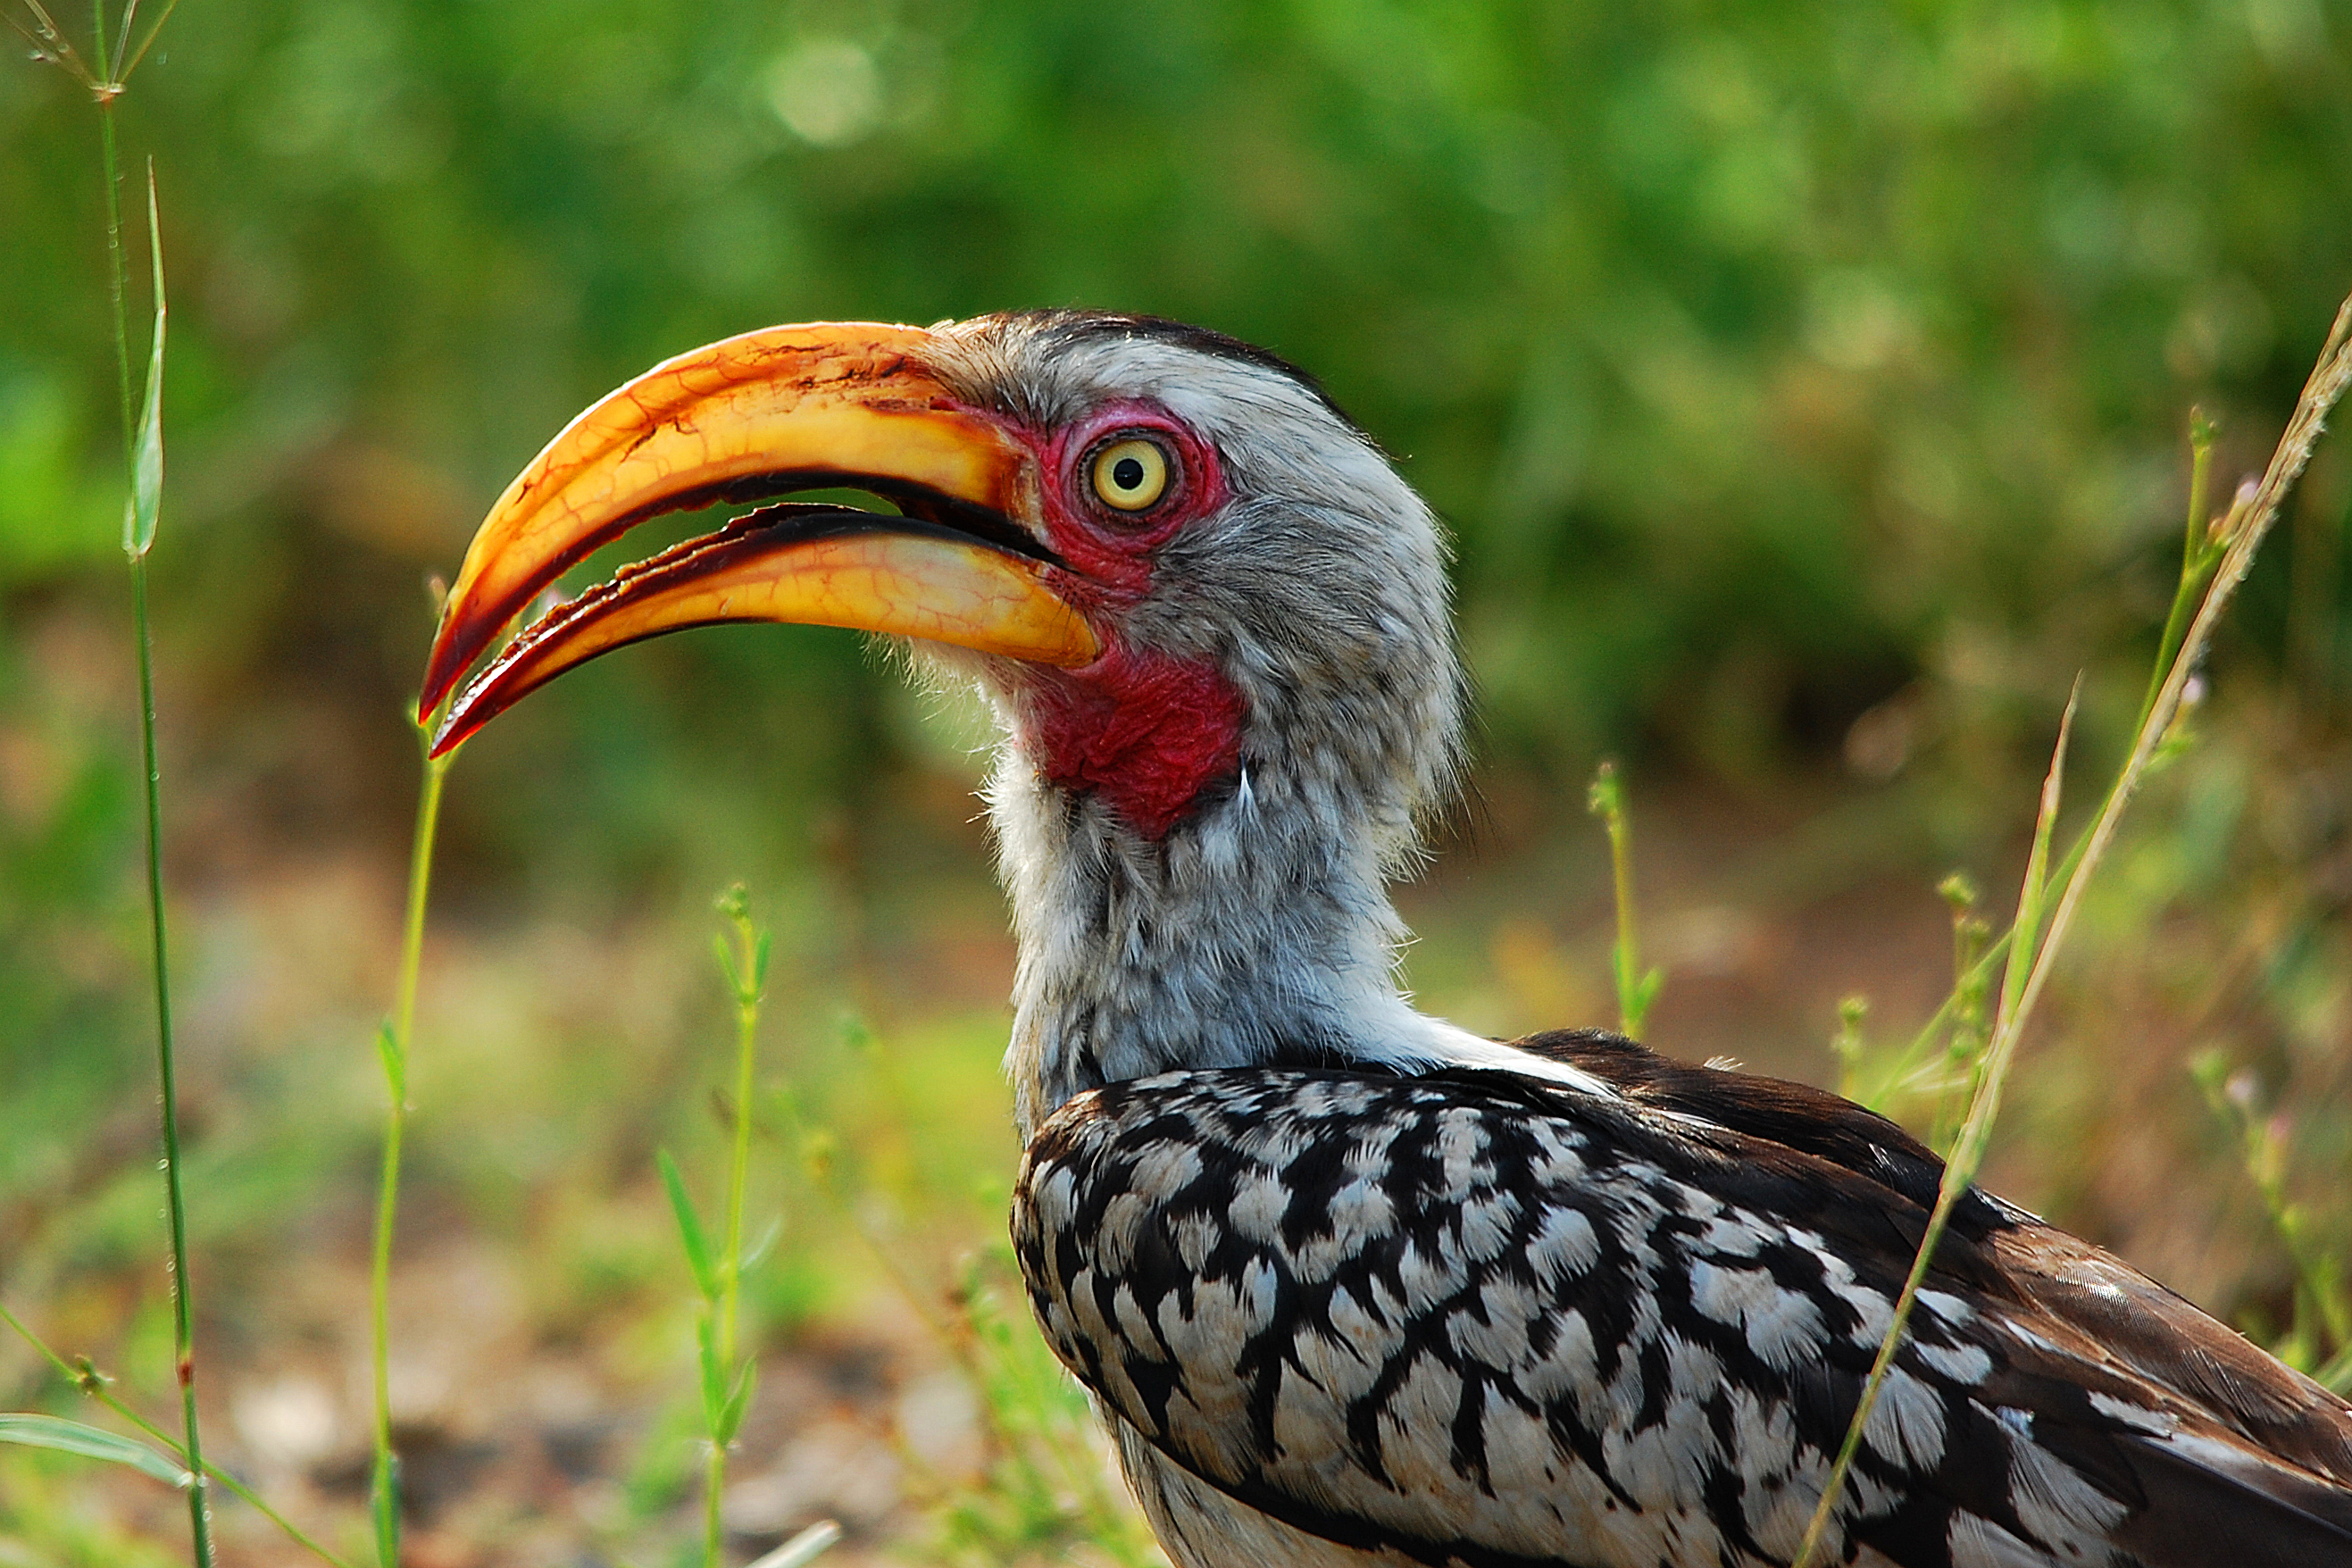 #5 Southern Yellow-billed Hornbill